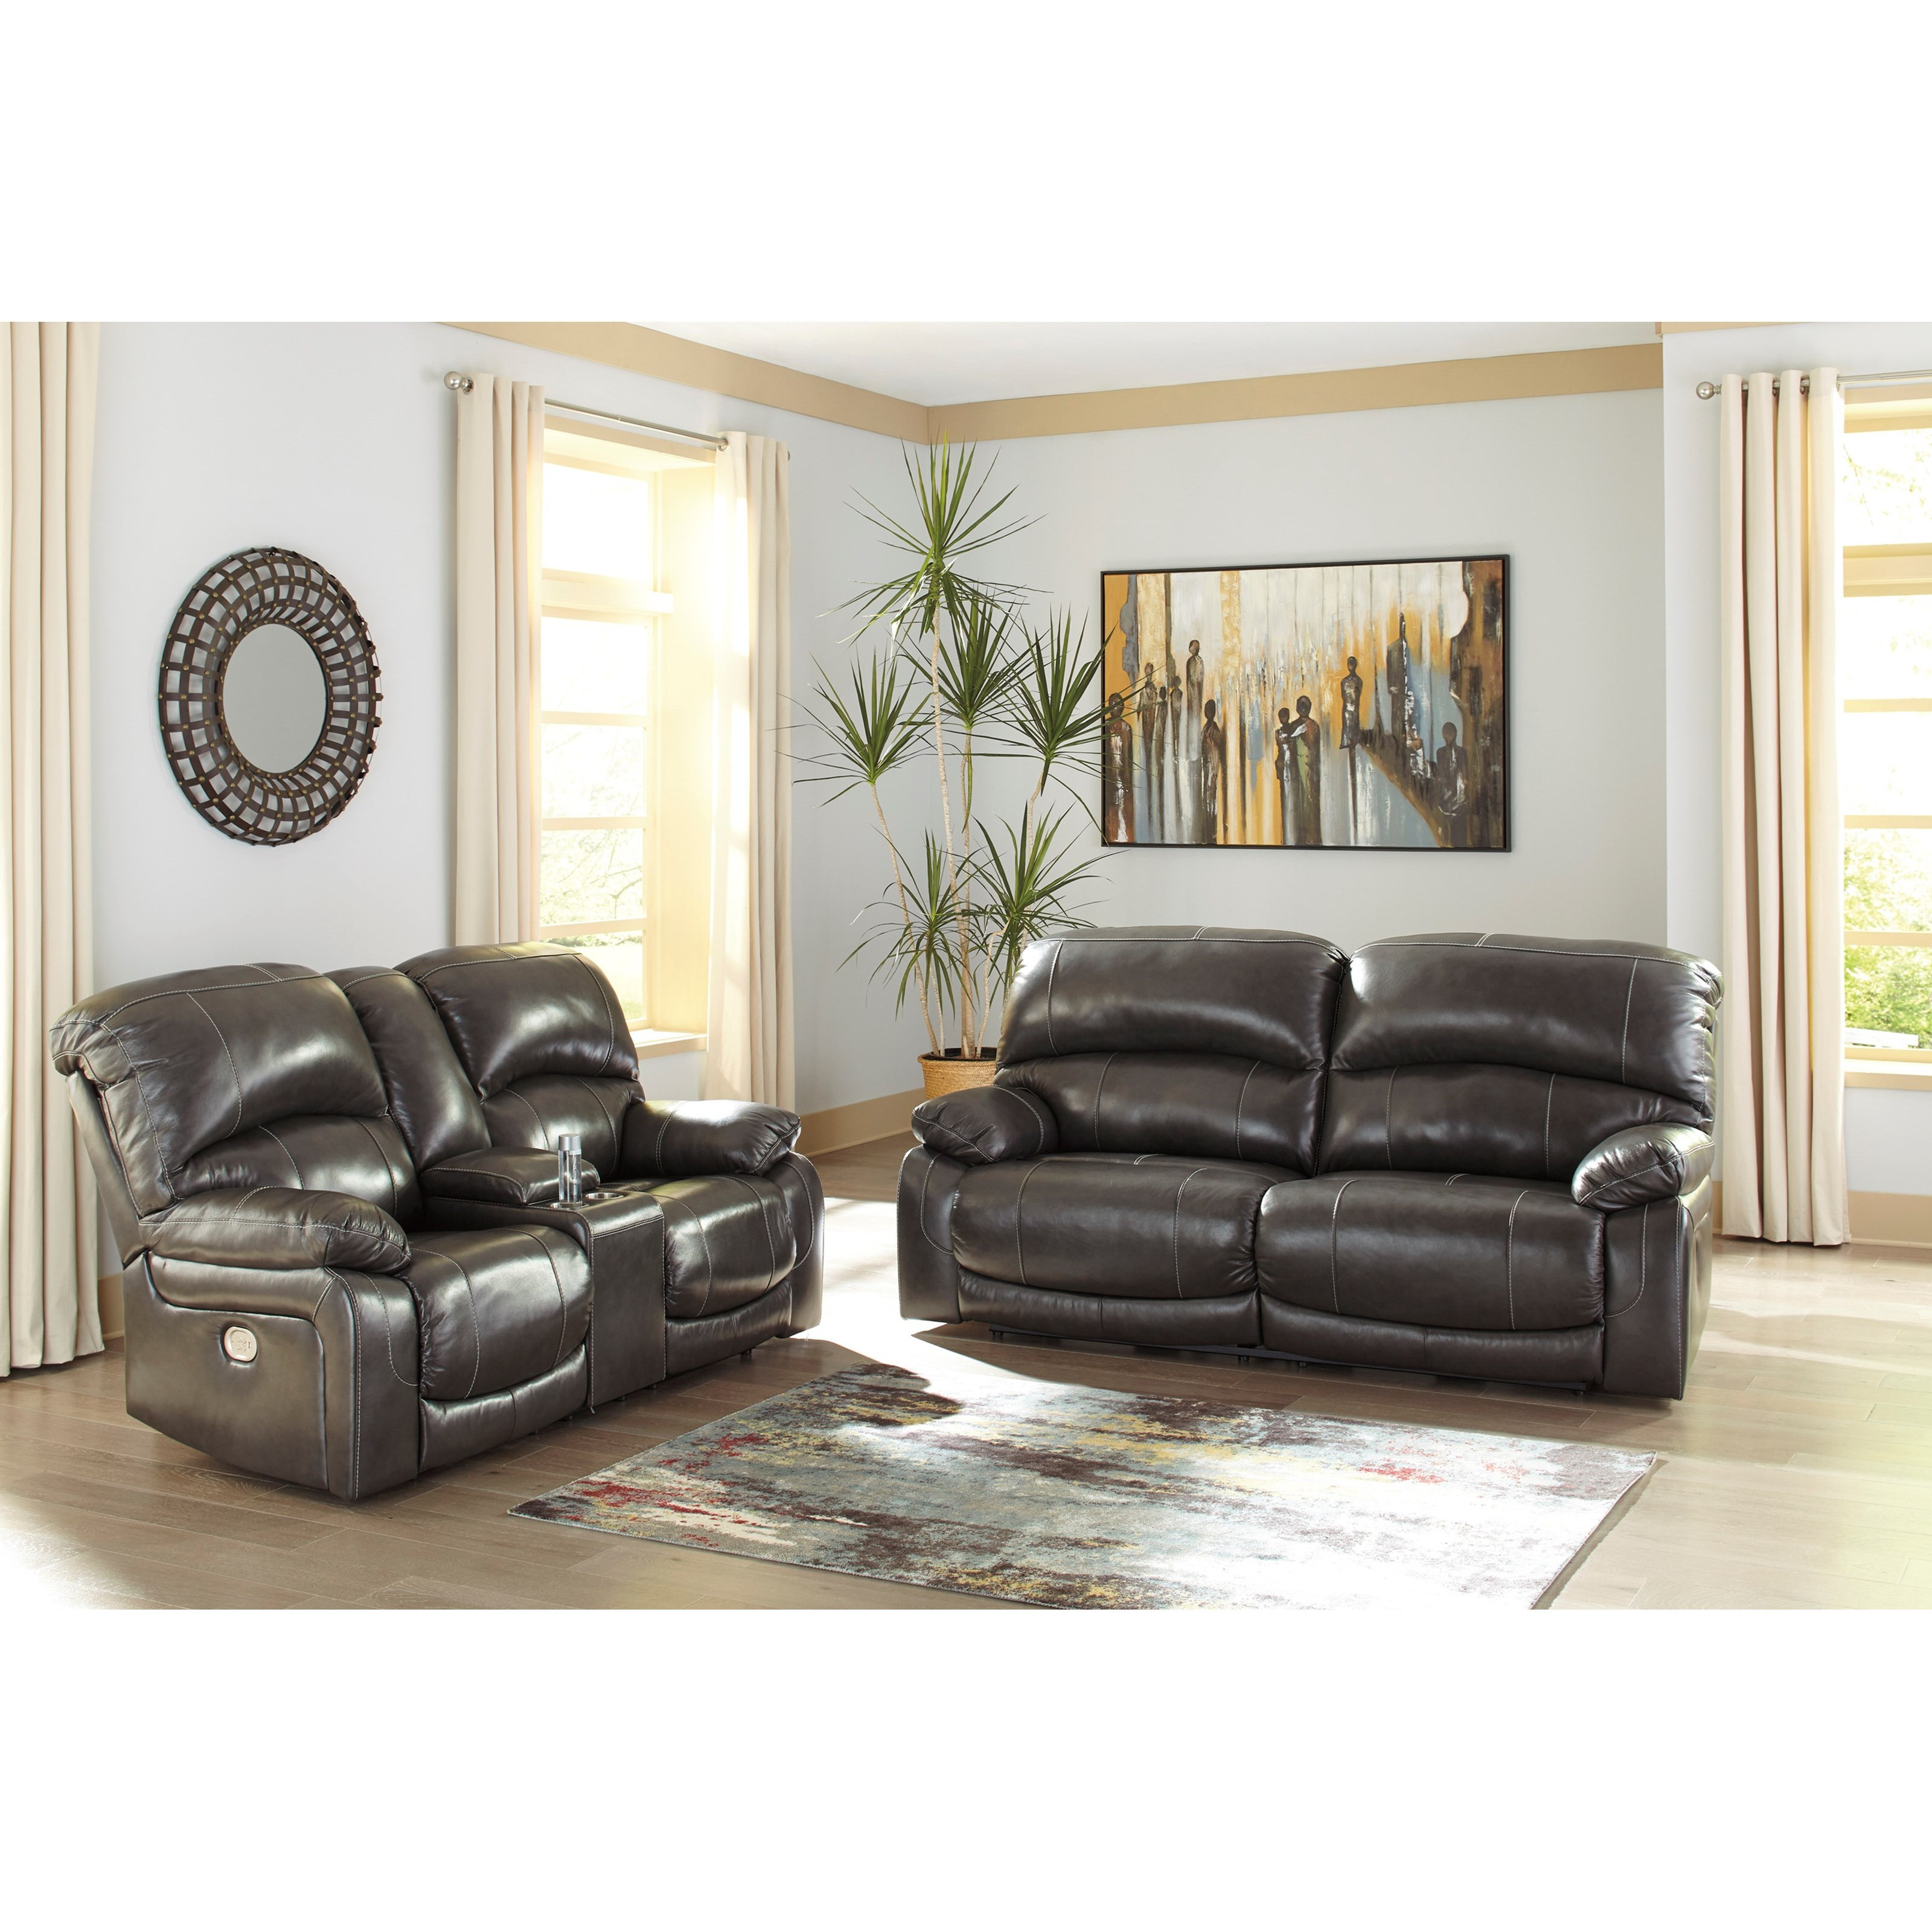 Hallstrung Power Reclining Living Room Group by Signature Design by Ashley at Northeast Factory Direct